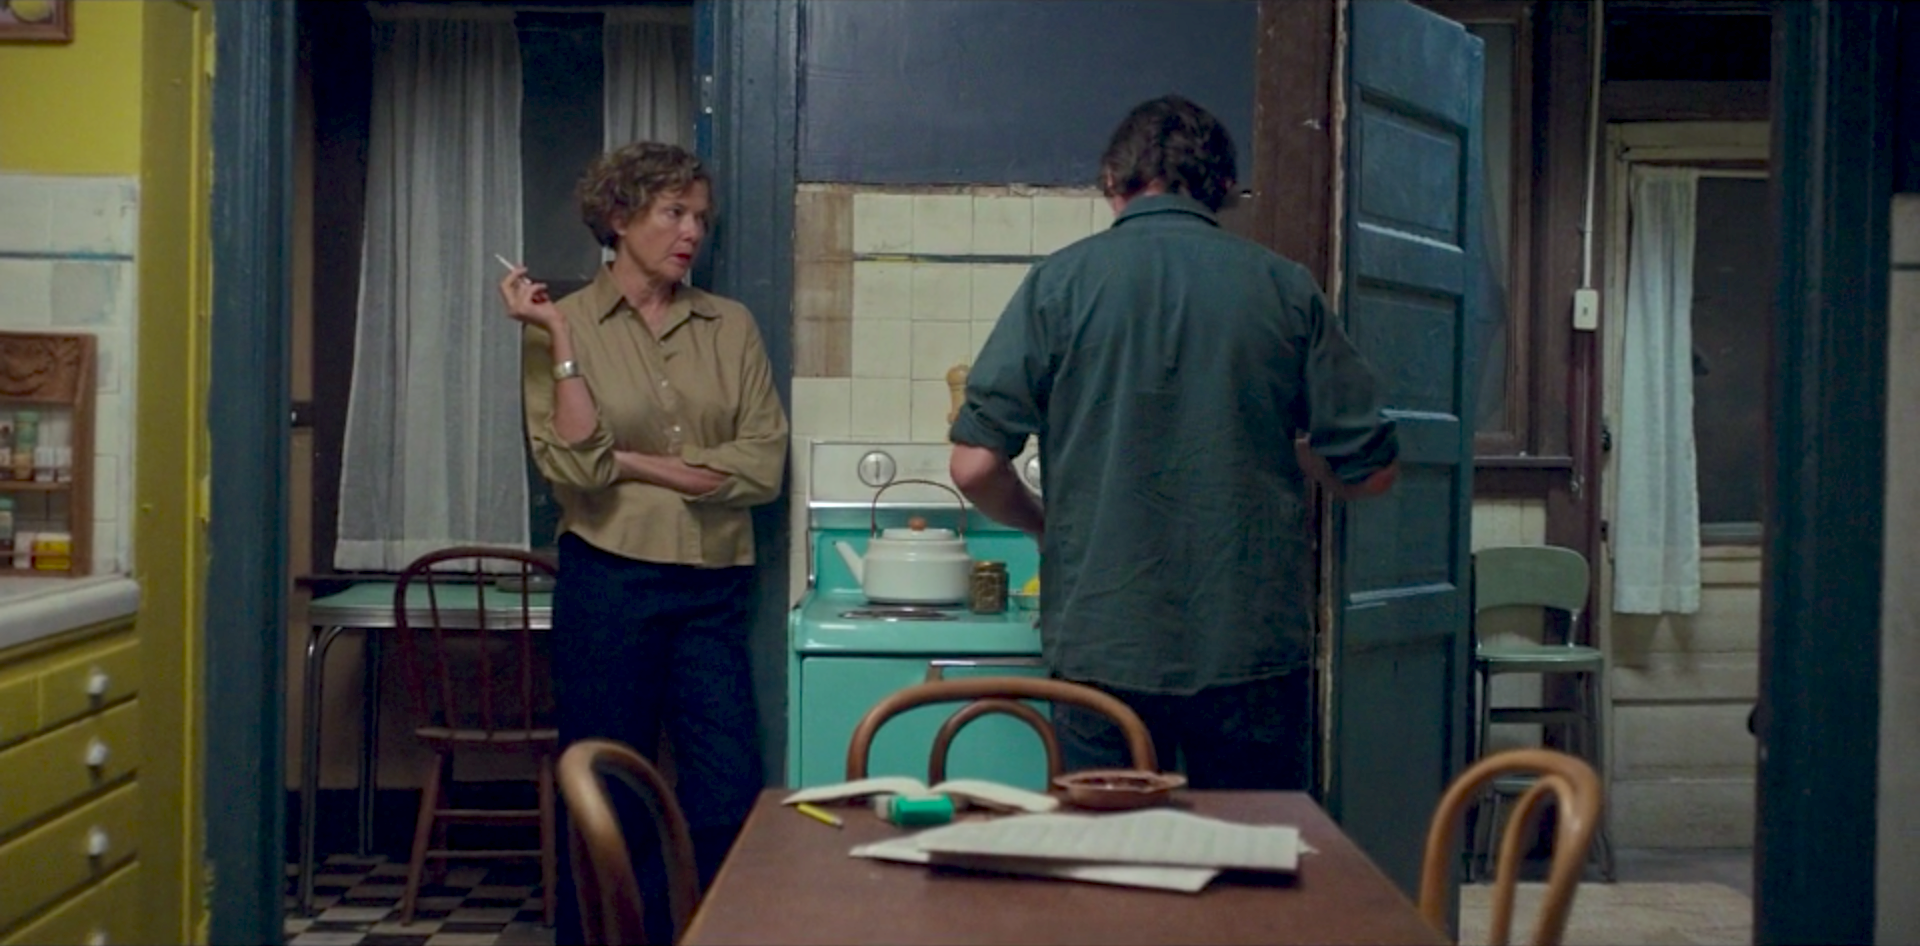 the other is dark a deep shade of purple the kitchen is collaborative by necessity the primary meeting point for the characters and their ideas - The Kitchen House Movie